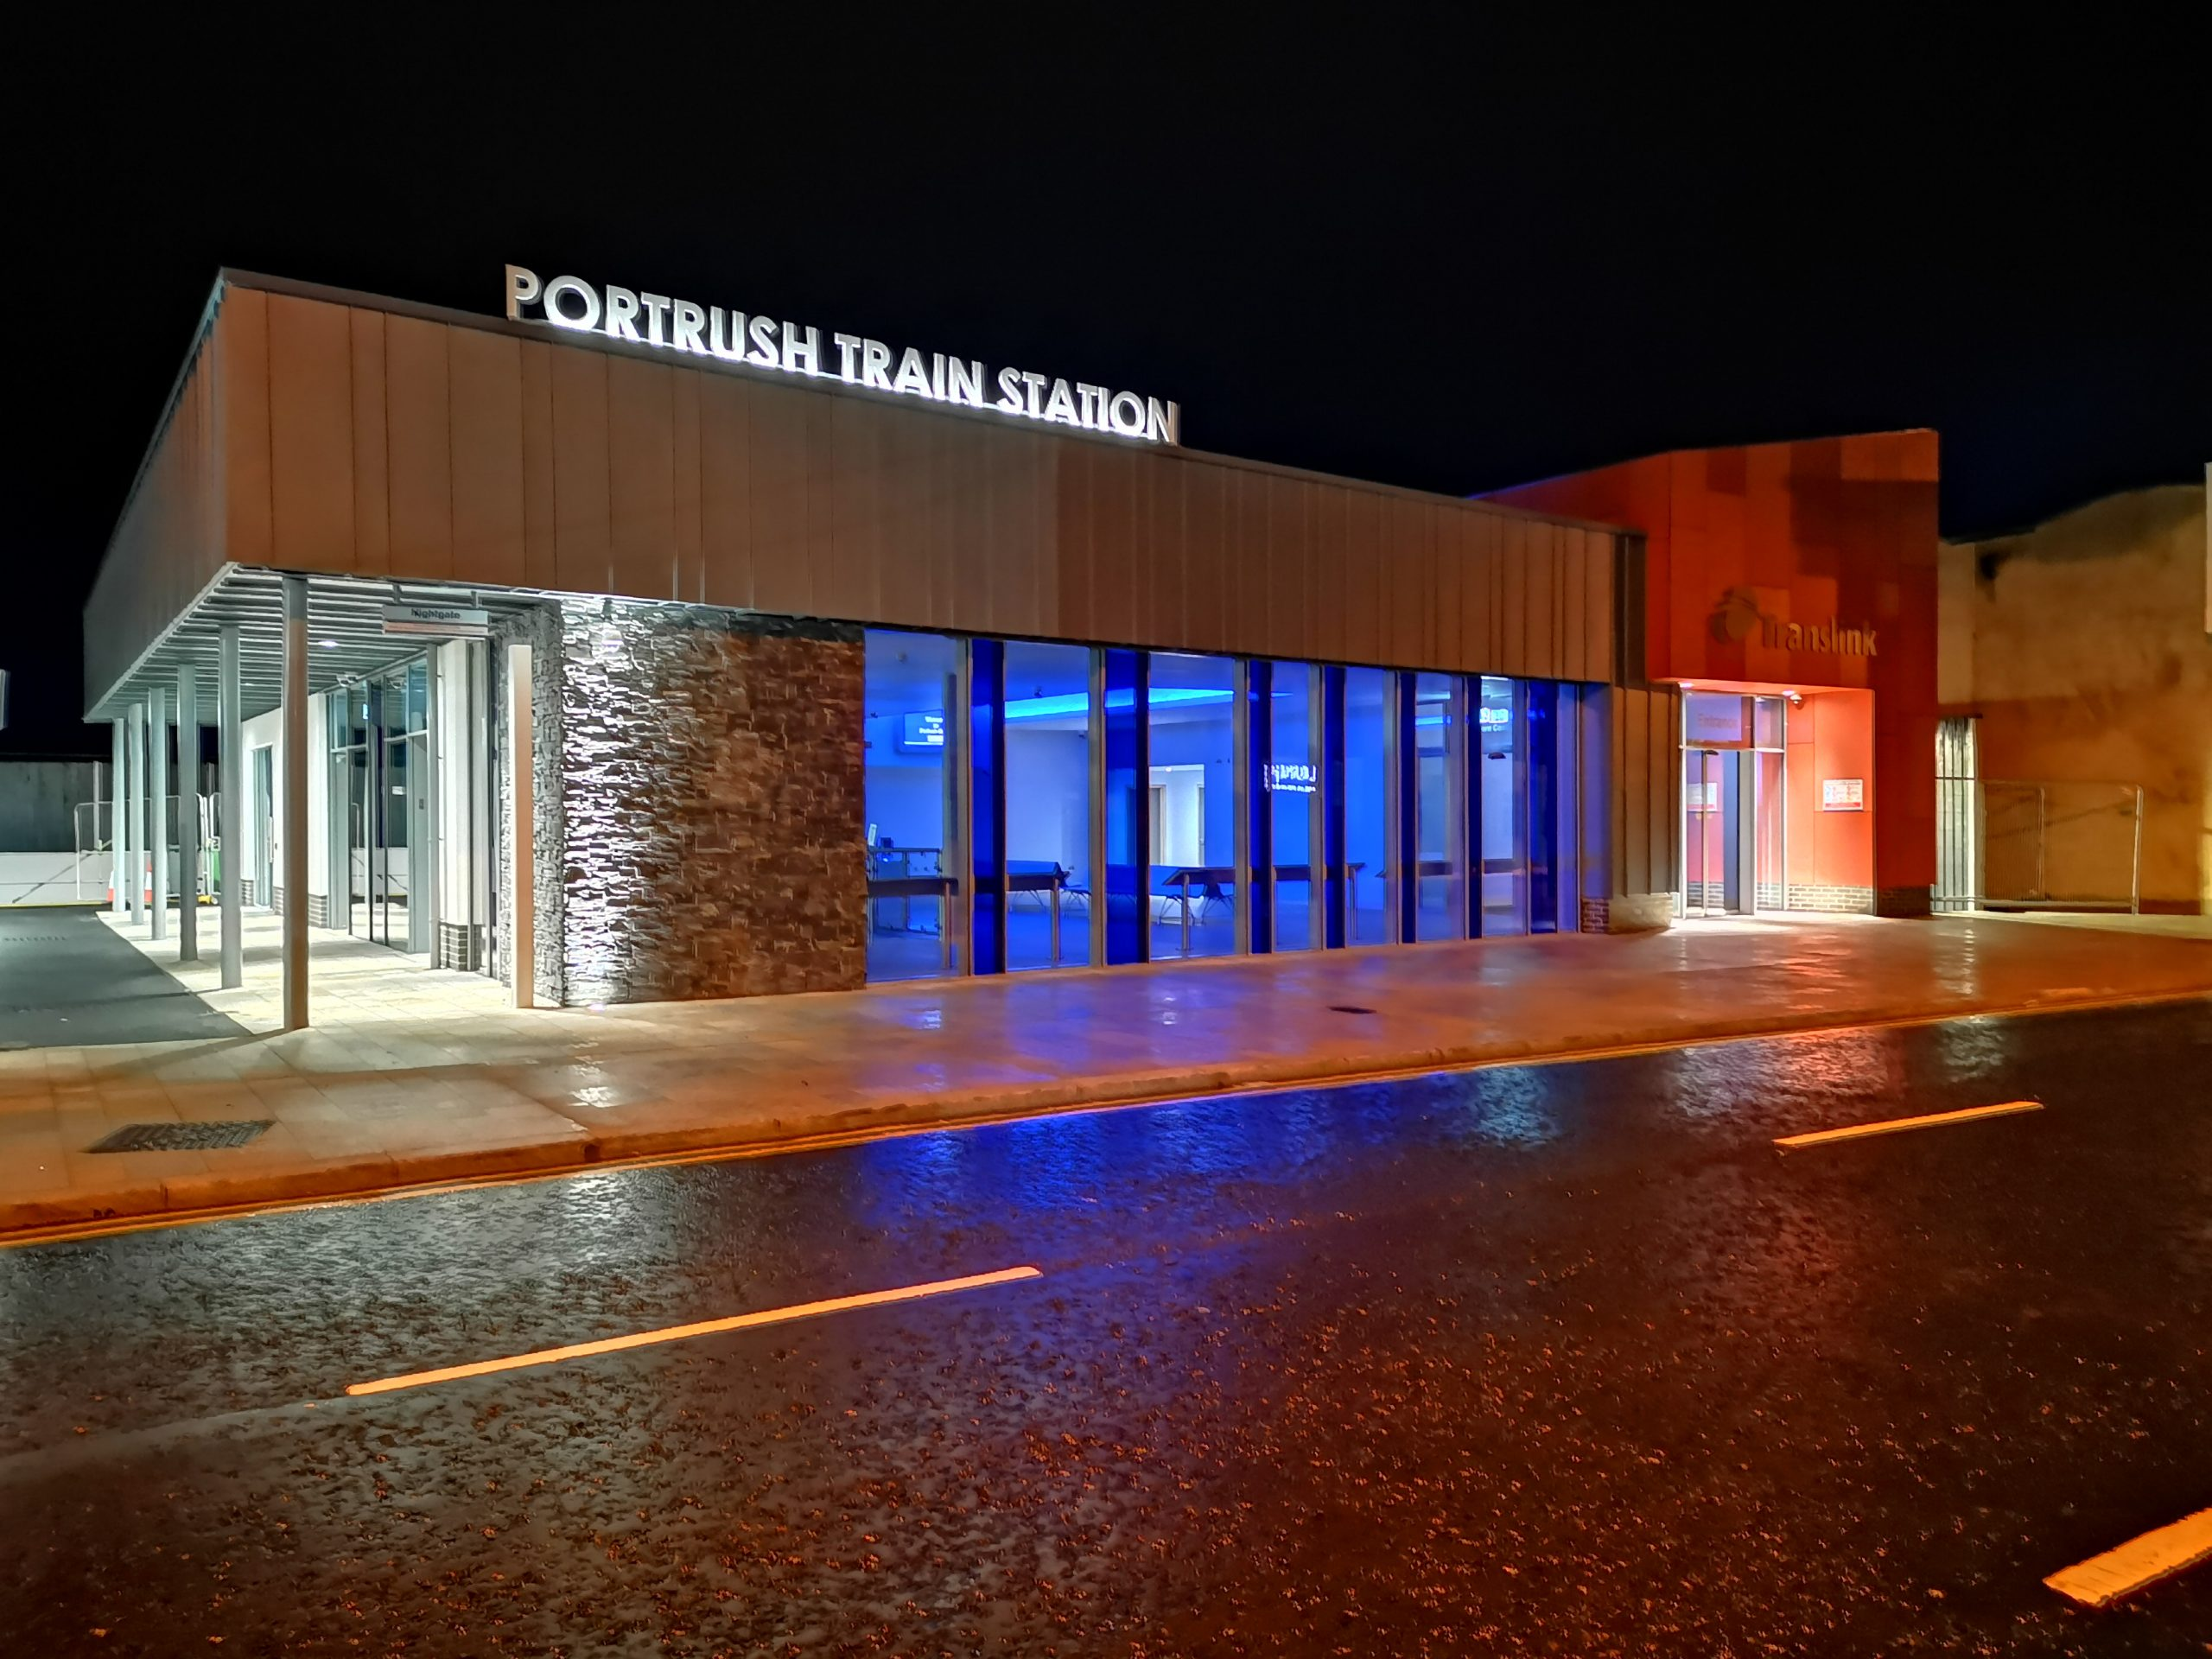 GRAHAM hands over new £5.6m Portrush Train Station ahead of 148th Open